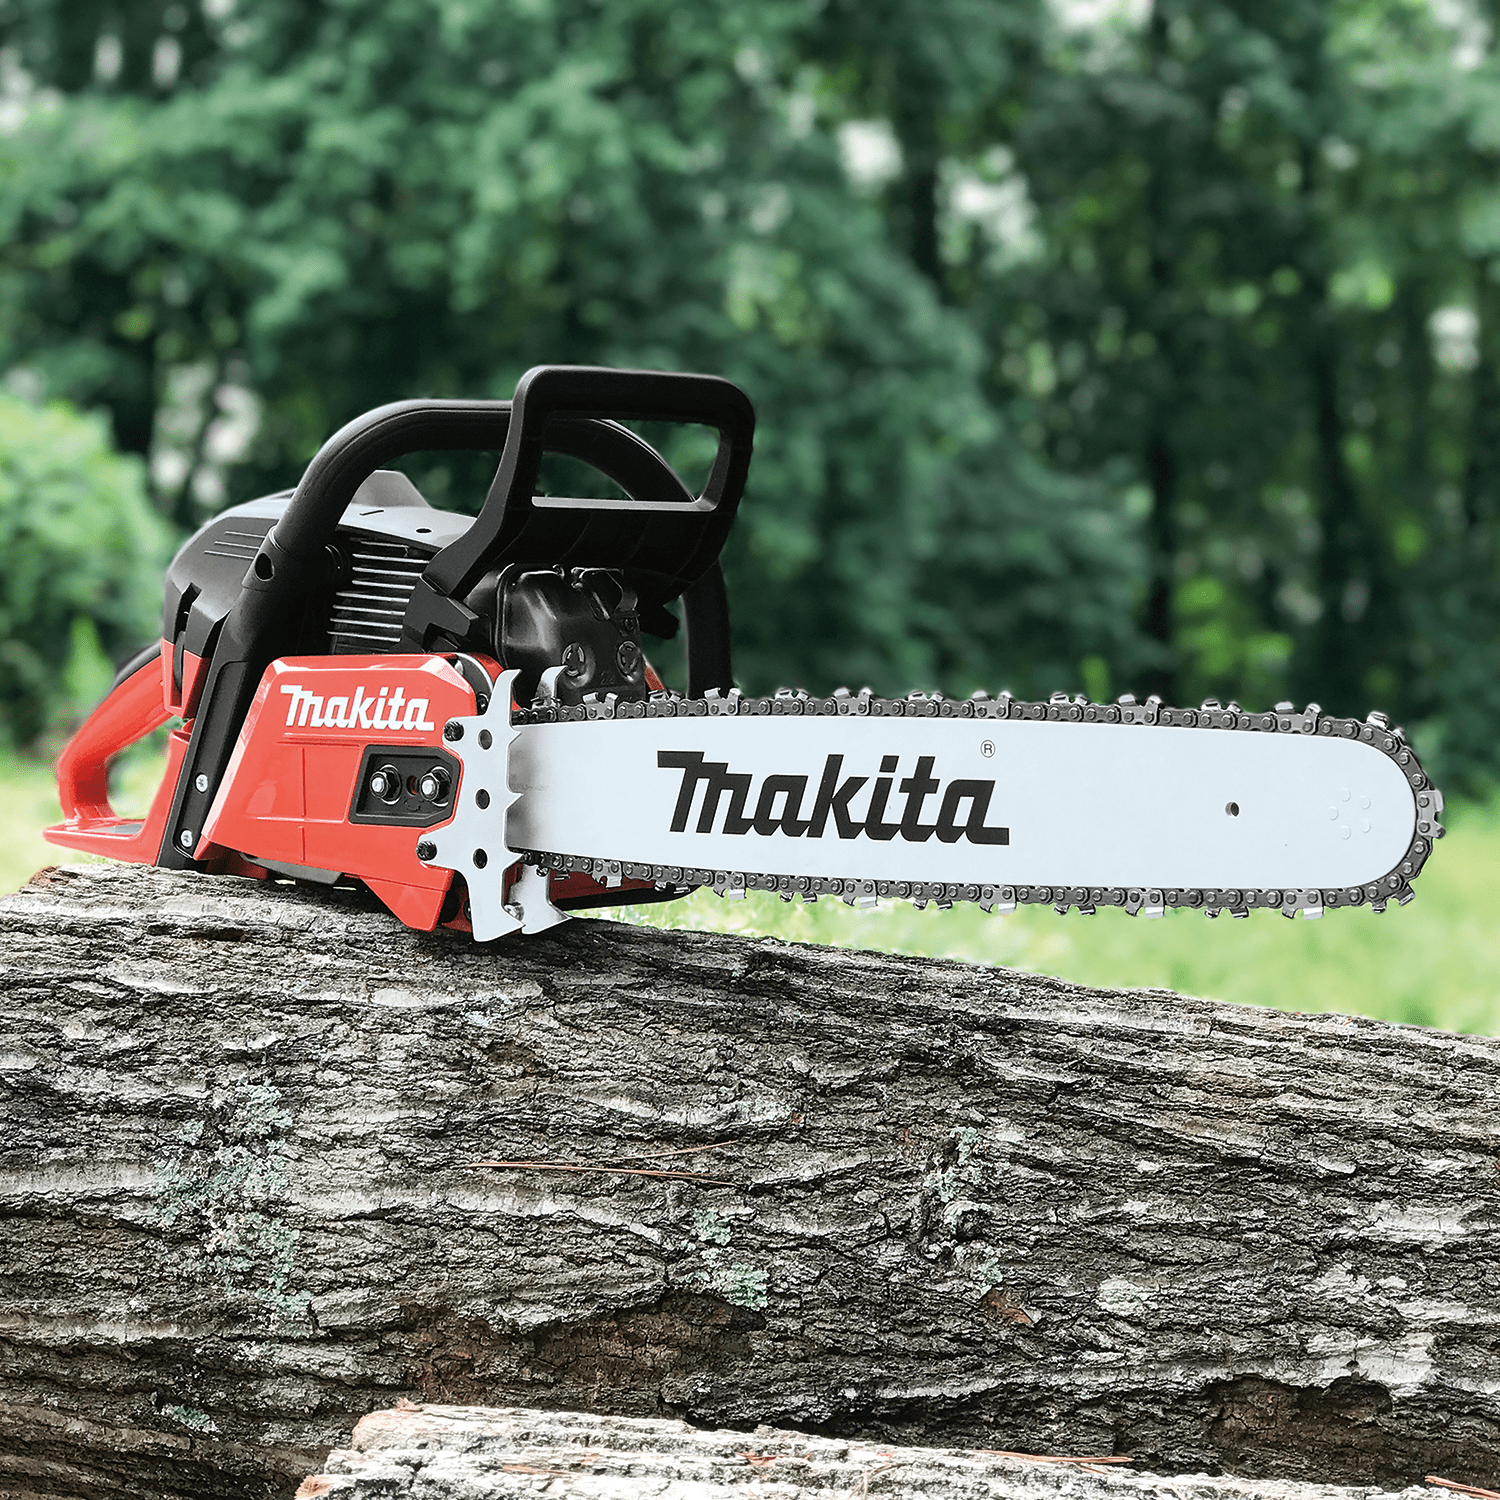 ea5600frgg 20 56 cc chain saw makita  [ 1500 x 1500 Pixel ]